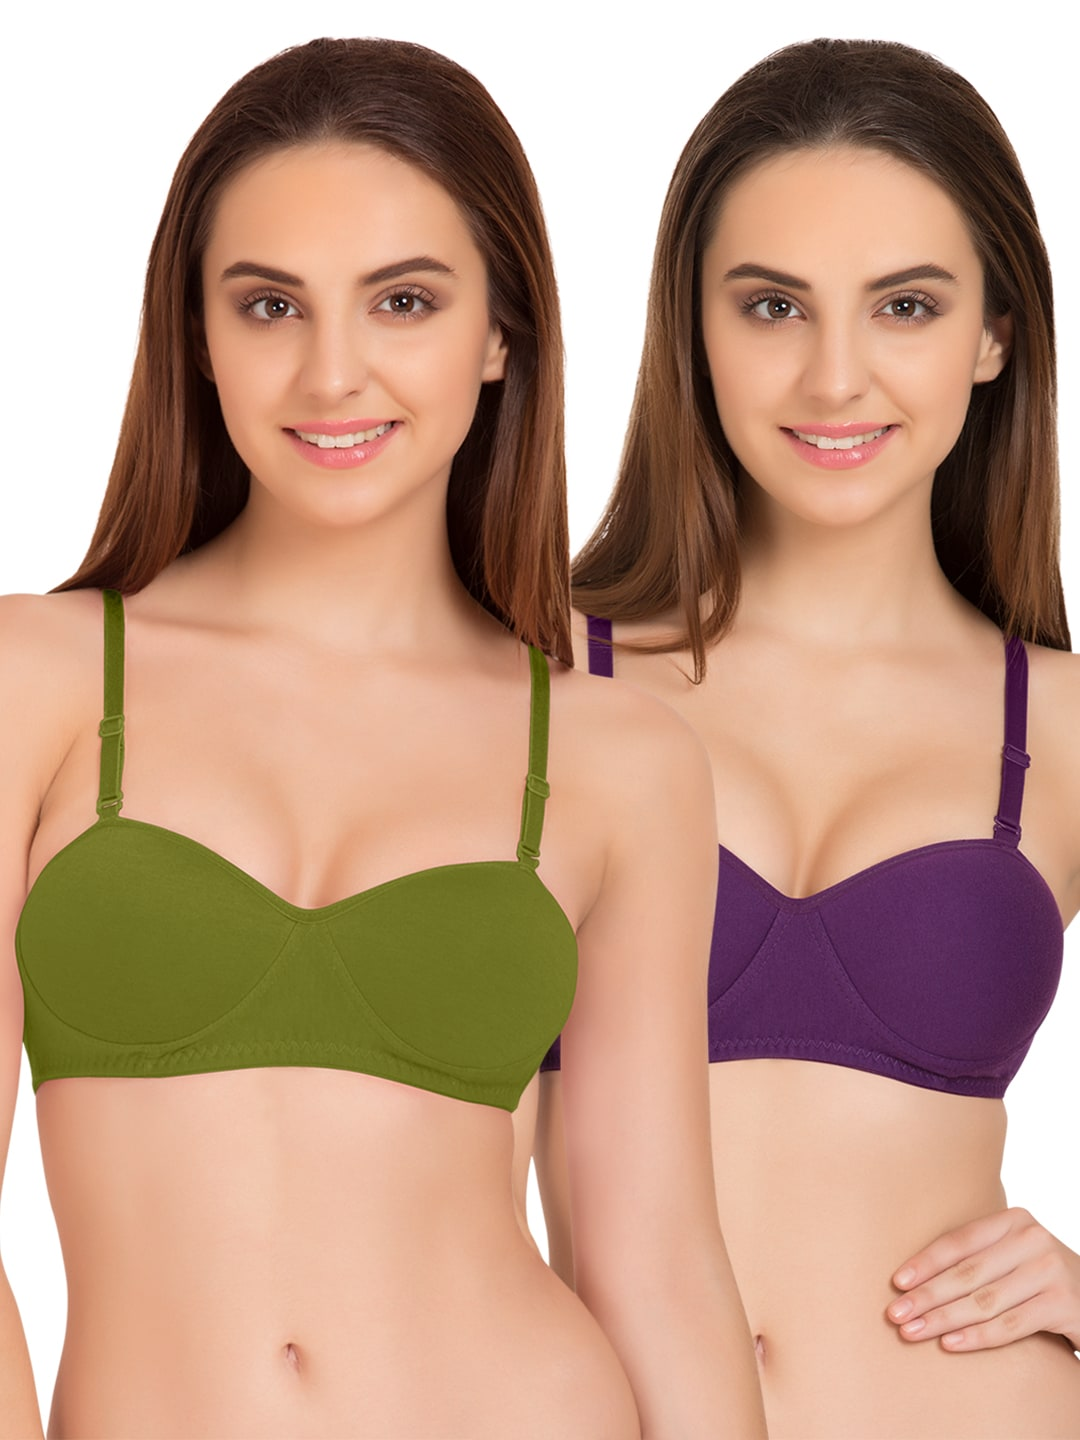 Tweens Set of 2 Olive Green & Purple Non-Wired T-shirt Bras TW91201 image